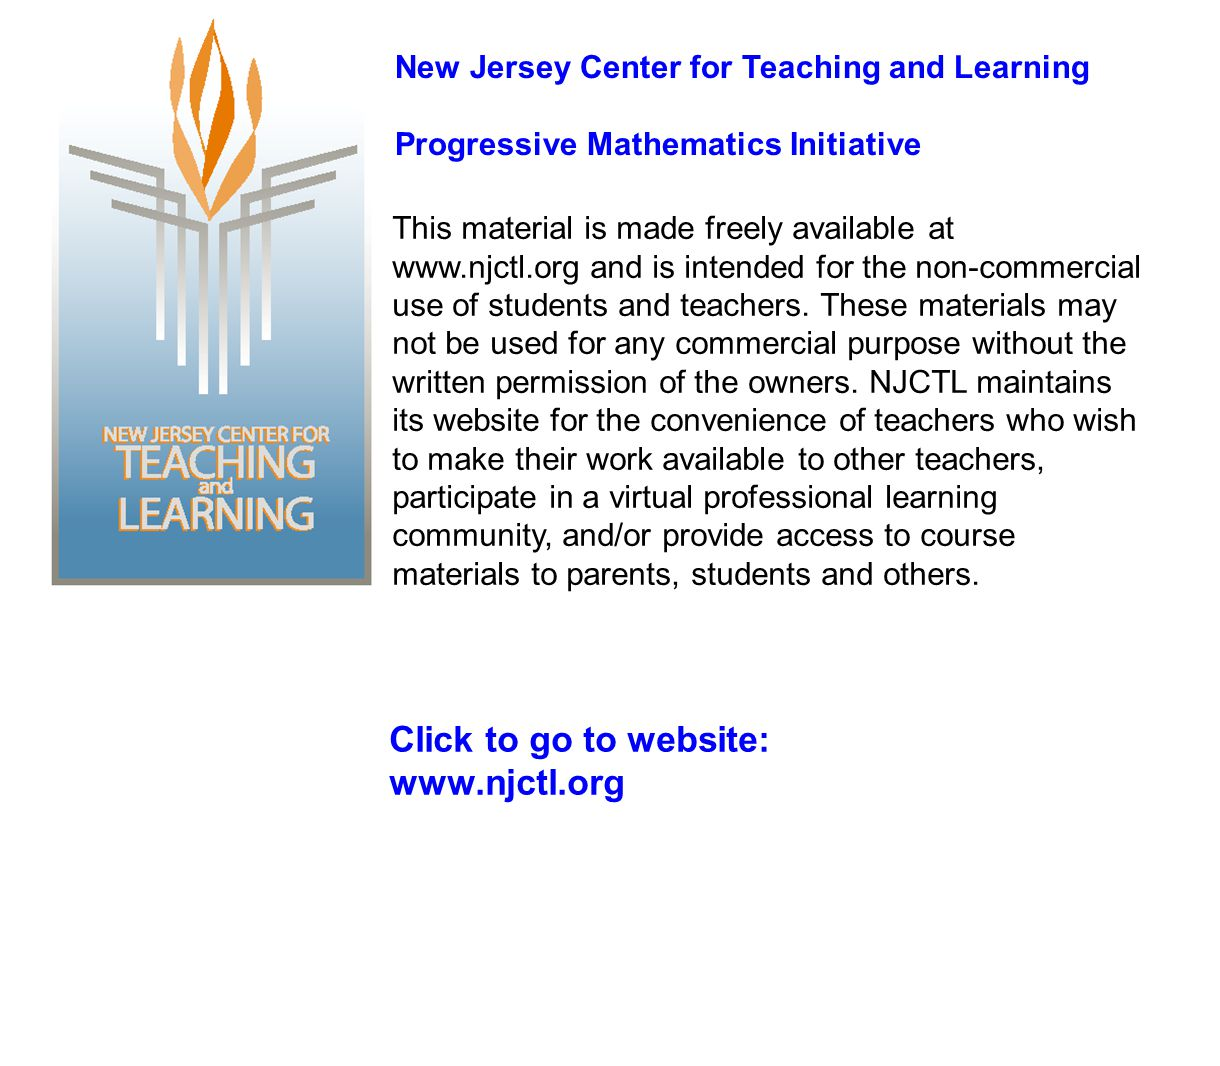 This material is made freely available at www.njctl.org and is intended for the non-commercial use of students and teachers. These materials may not b